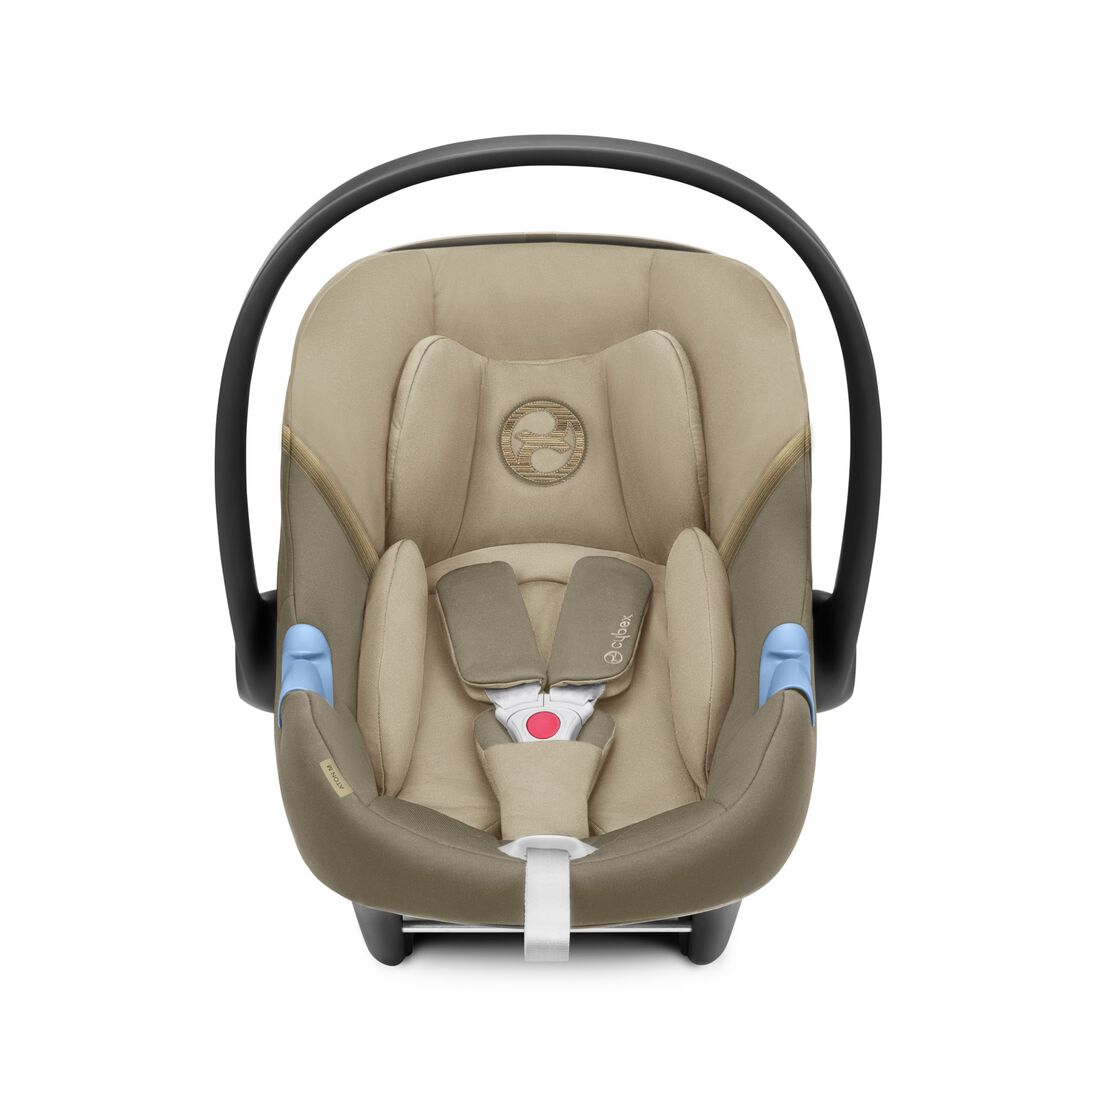 CYBEX Aton M i-Size - Classic Beige in Classic Beige large image number 2